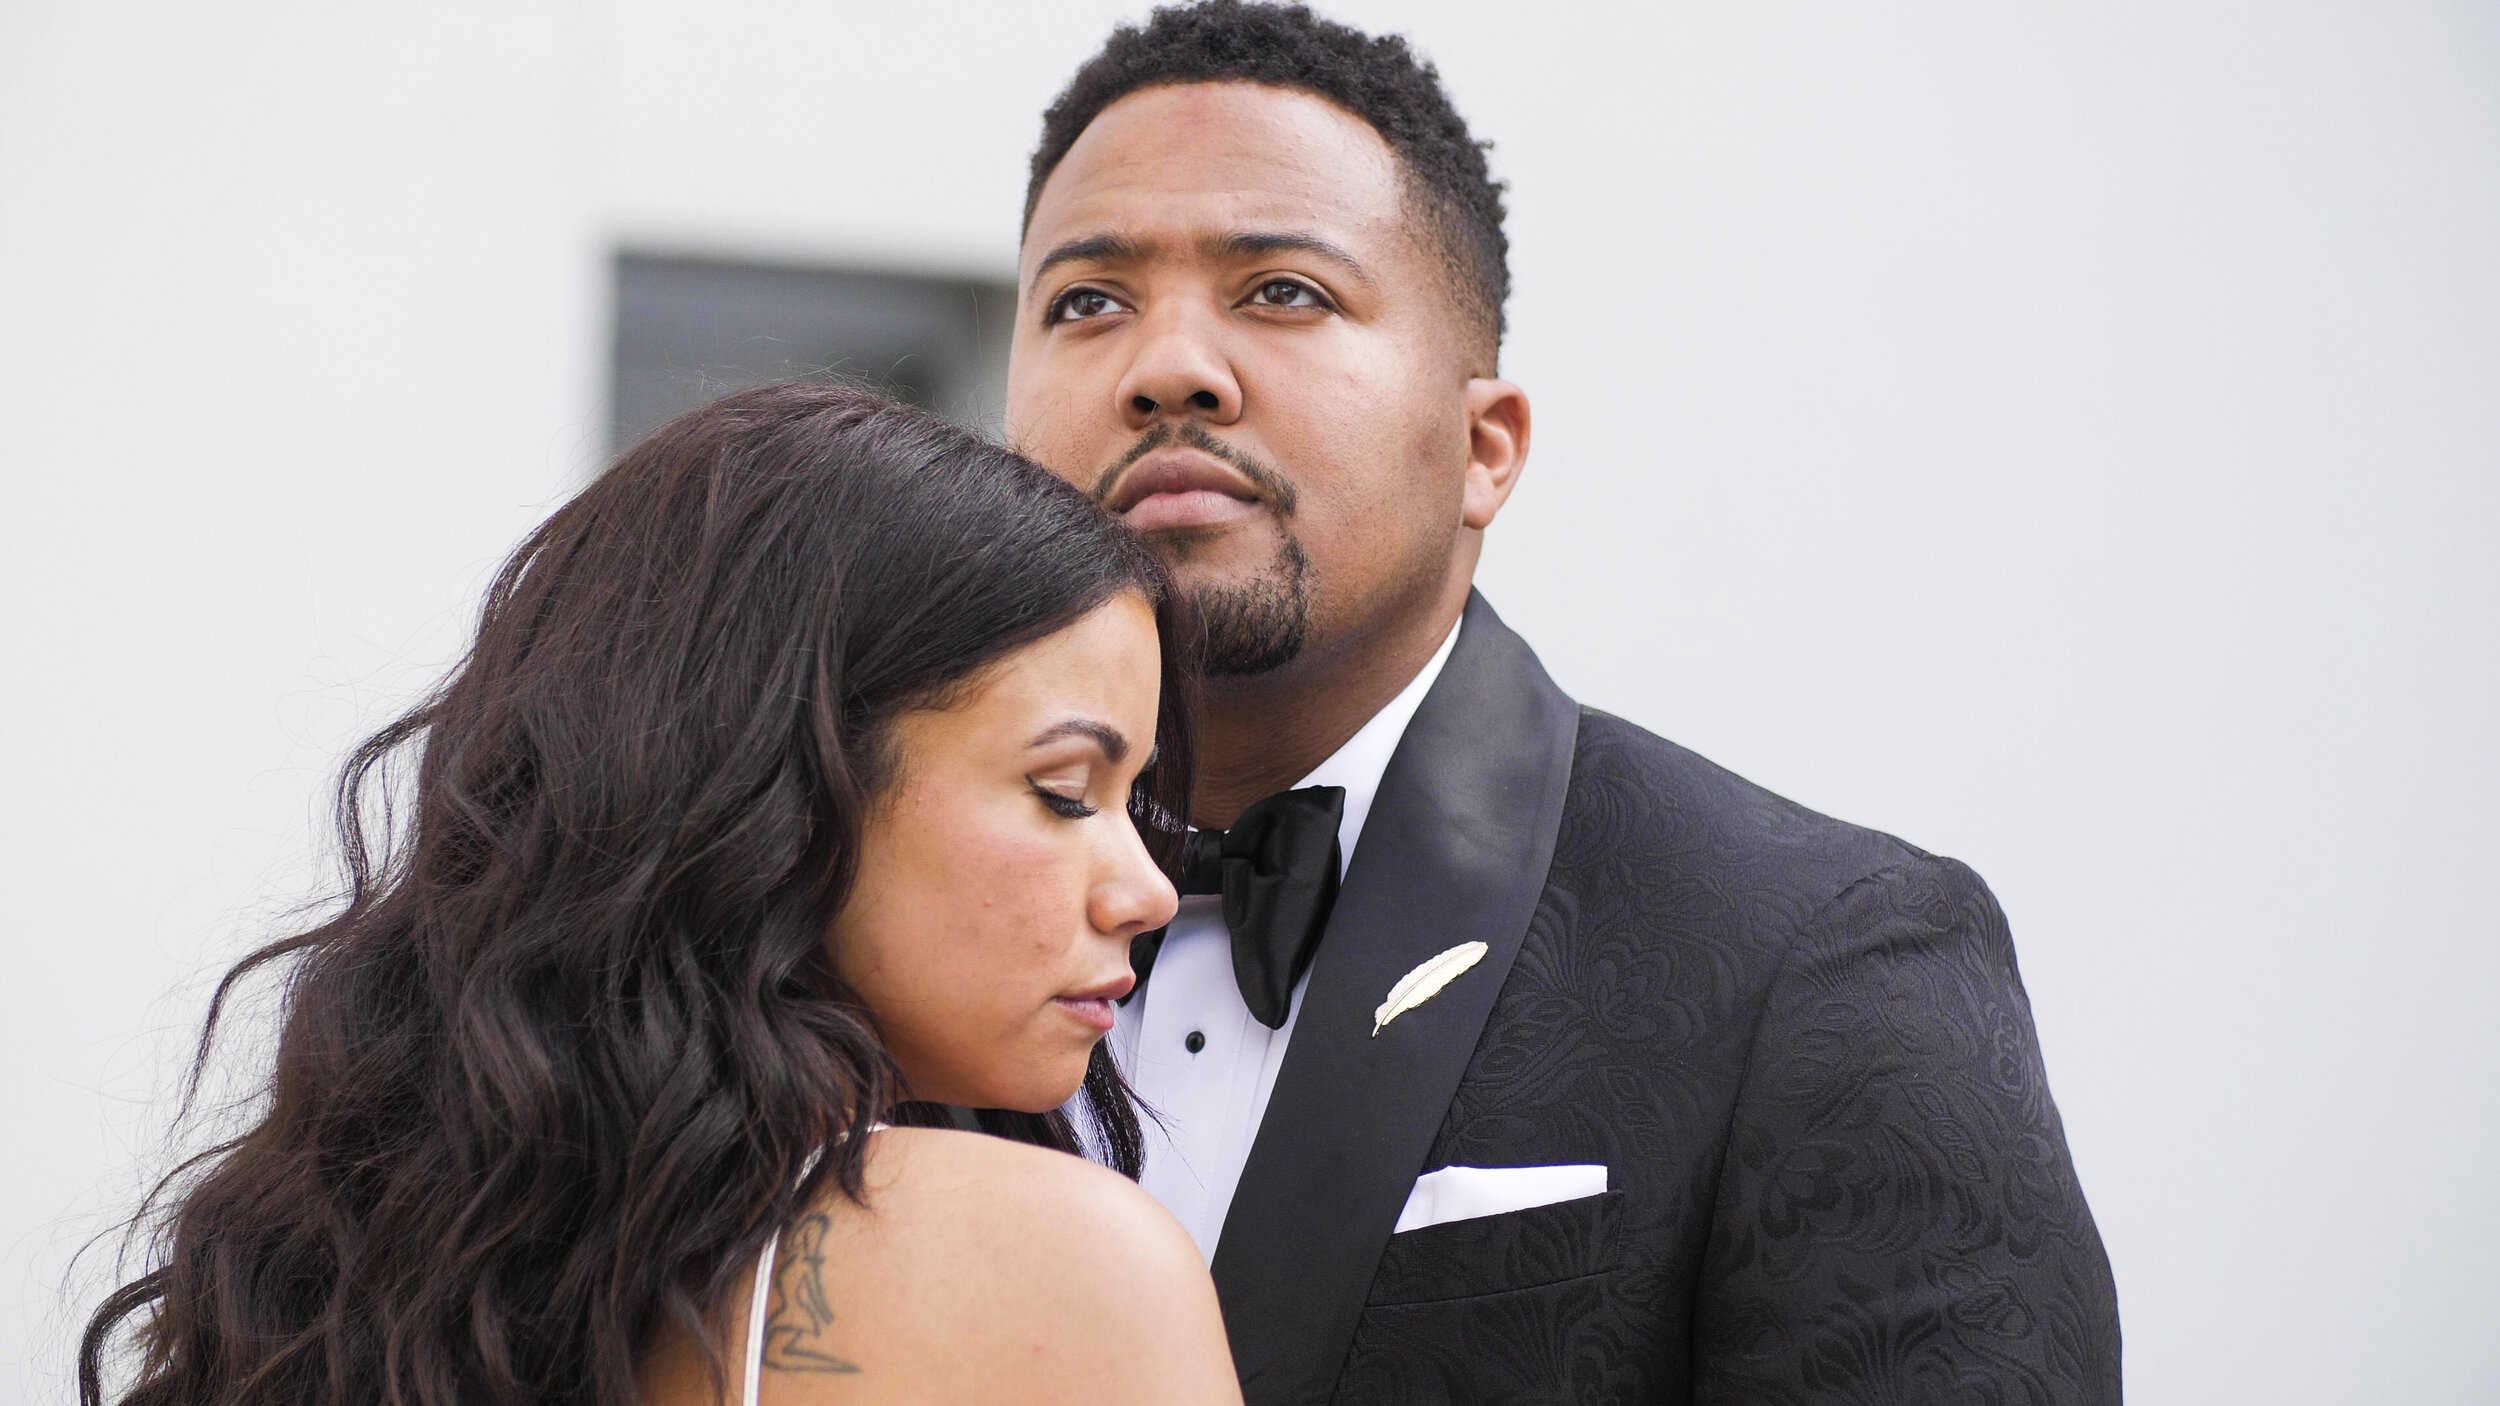 """Mercedes & Davonte - This beautiful Flint wedding was stylish and emotional.  These two are natural models!  Their love story started soon after their first date. Mercedes knew that night, her prayers had been answered. Davonte also knew he found his """"good thing""""."""